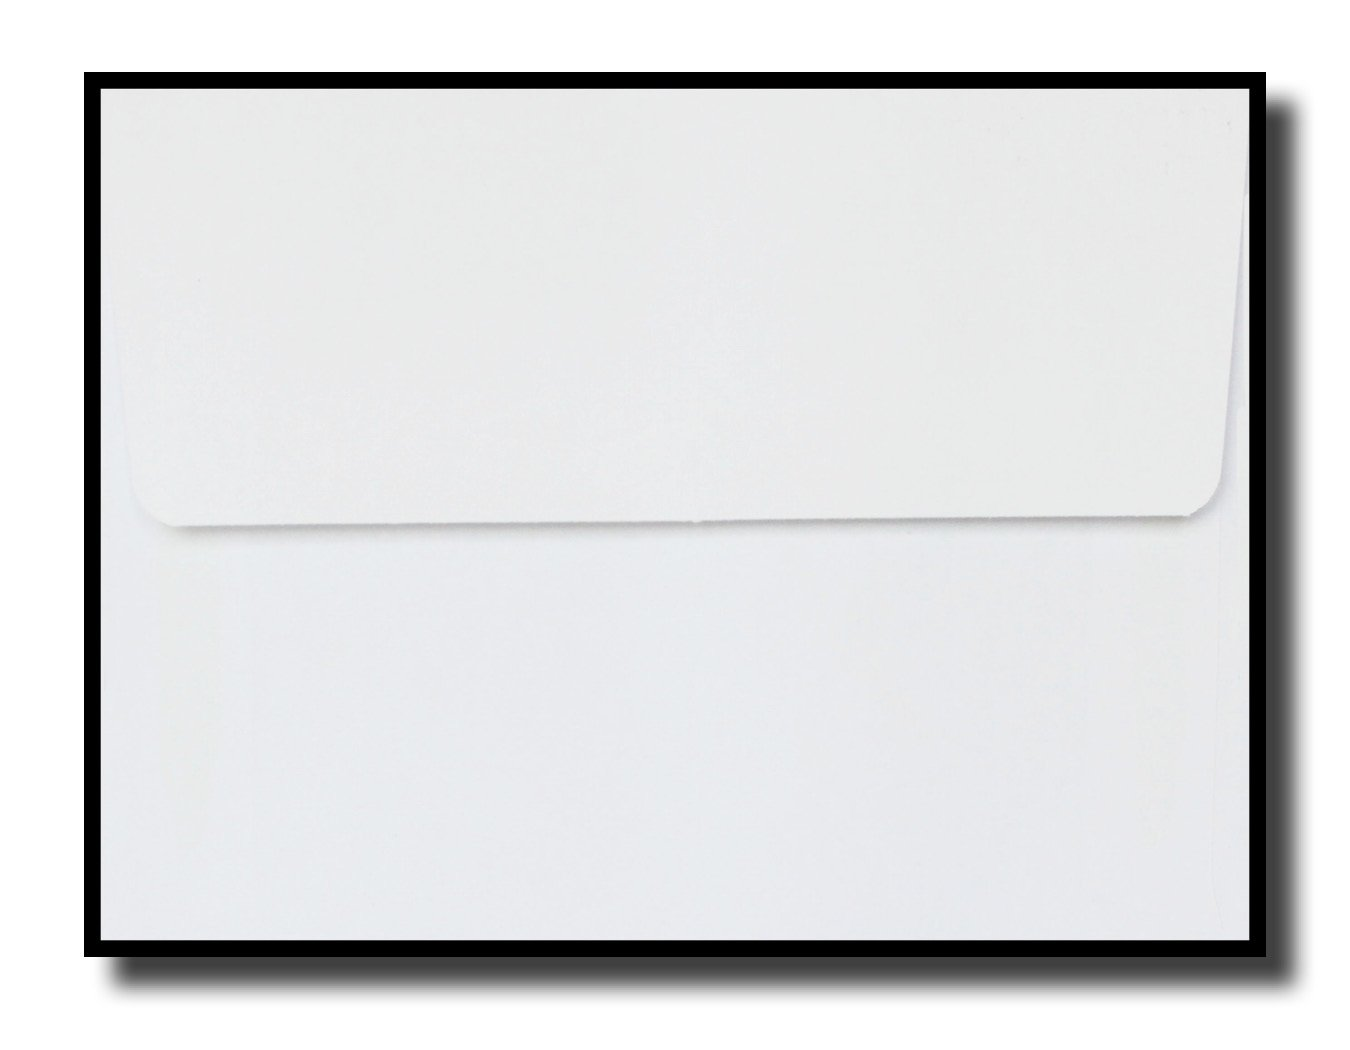 Sympathy Greeting Cards - S9003. Greeting Cards Featuring With Sympathy Written on a Subtle, Professional Background. Box Set Has 25 Greeting Cards and 26 Bright White Envelopes.